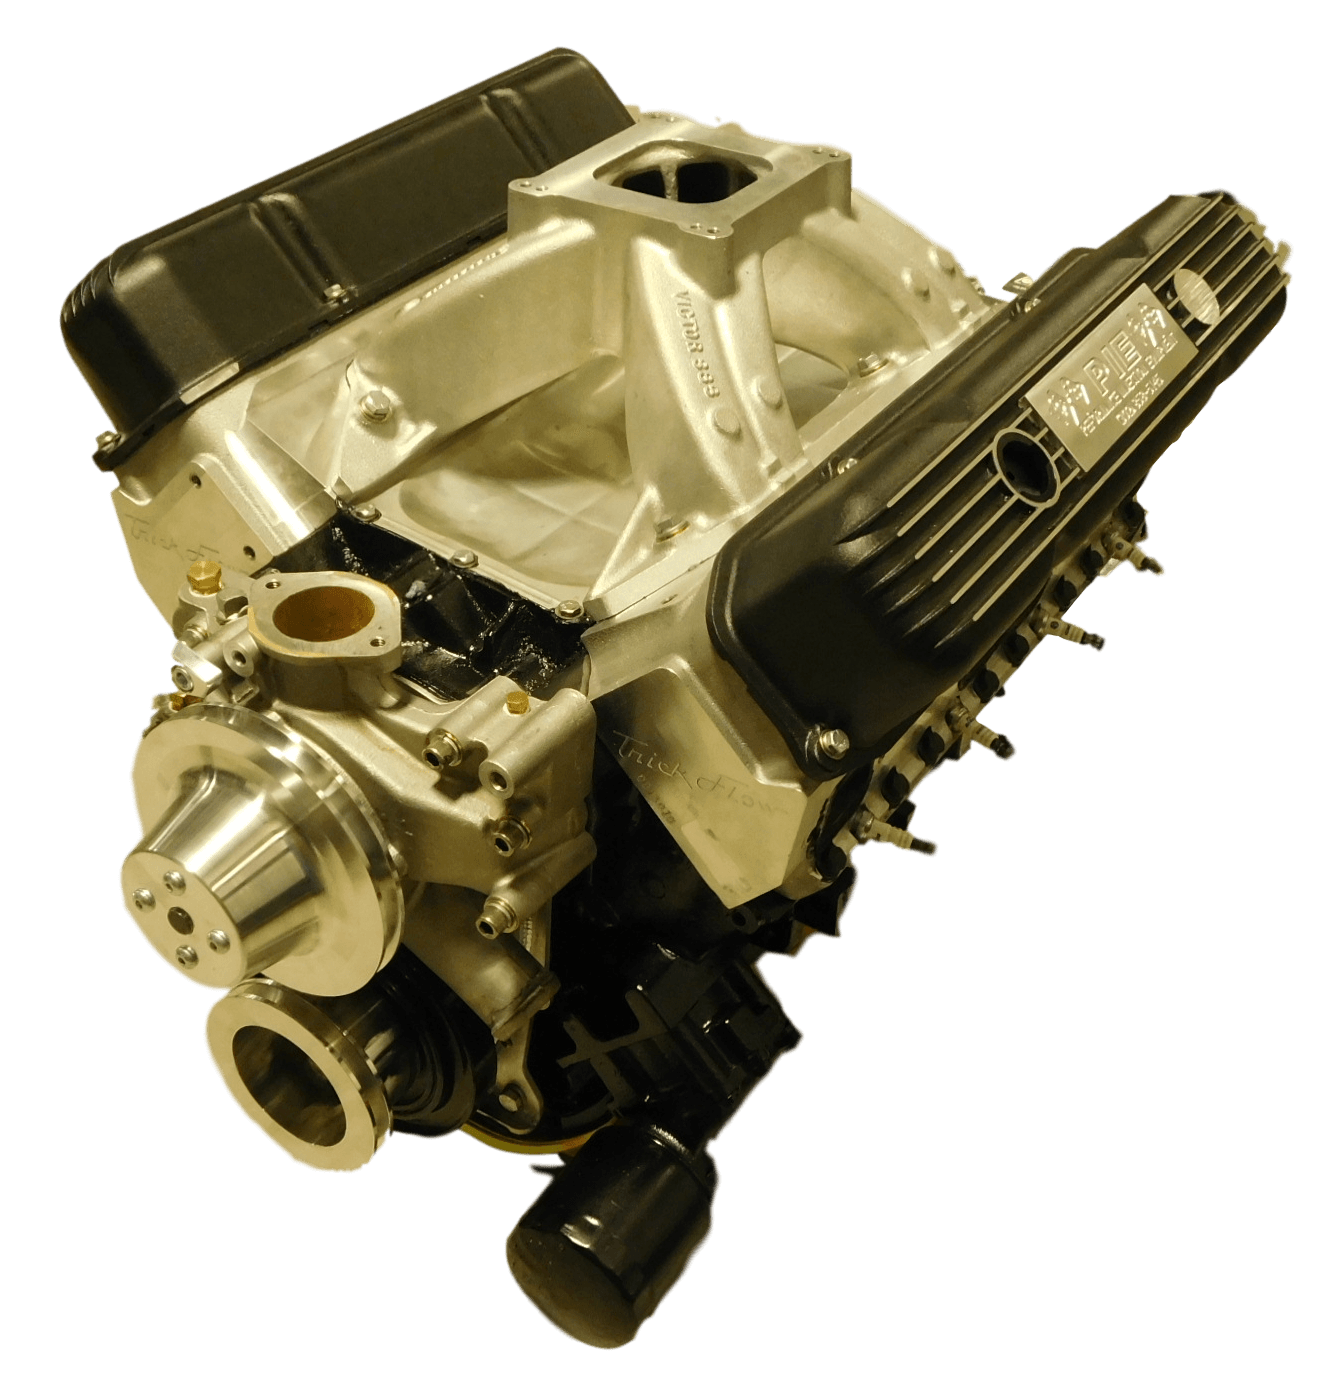 Mopar Crate Engine Reviews